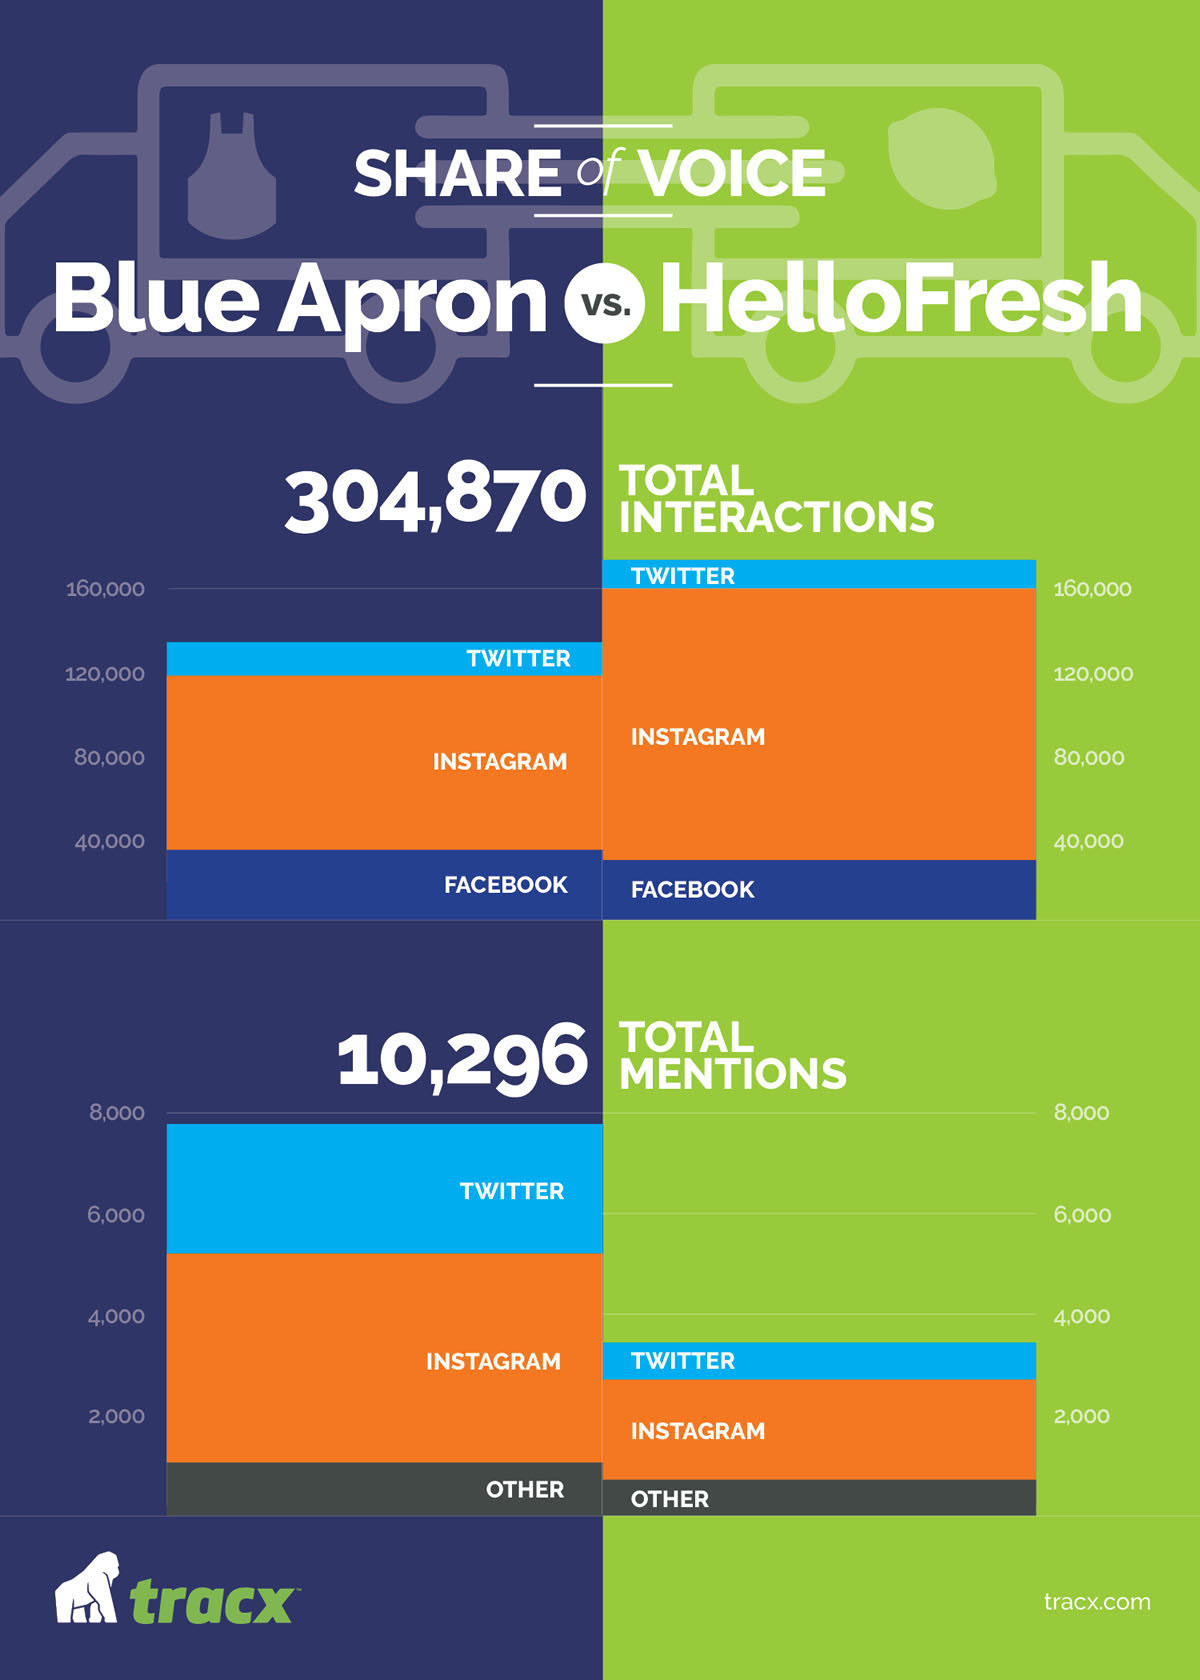 Although Blue Apron leads in share of voice for conversations and mentions, HelloFresh takes the reigns in terms of interactions and engagement – key to building a successful brand and loyal, repeat customers.